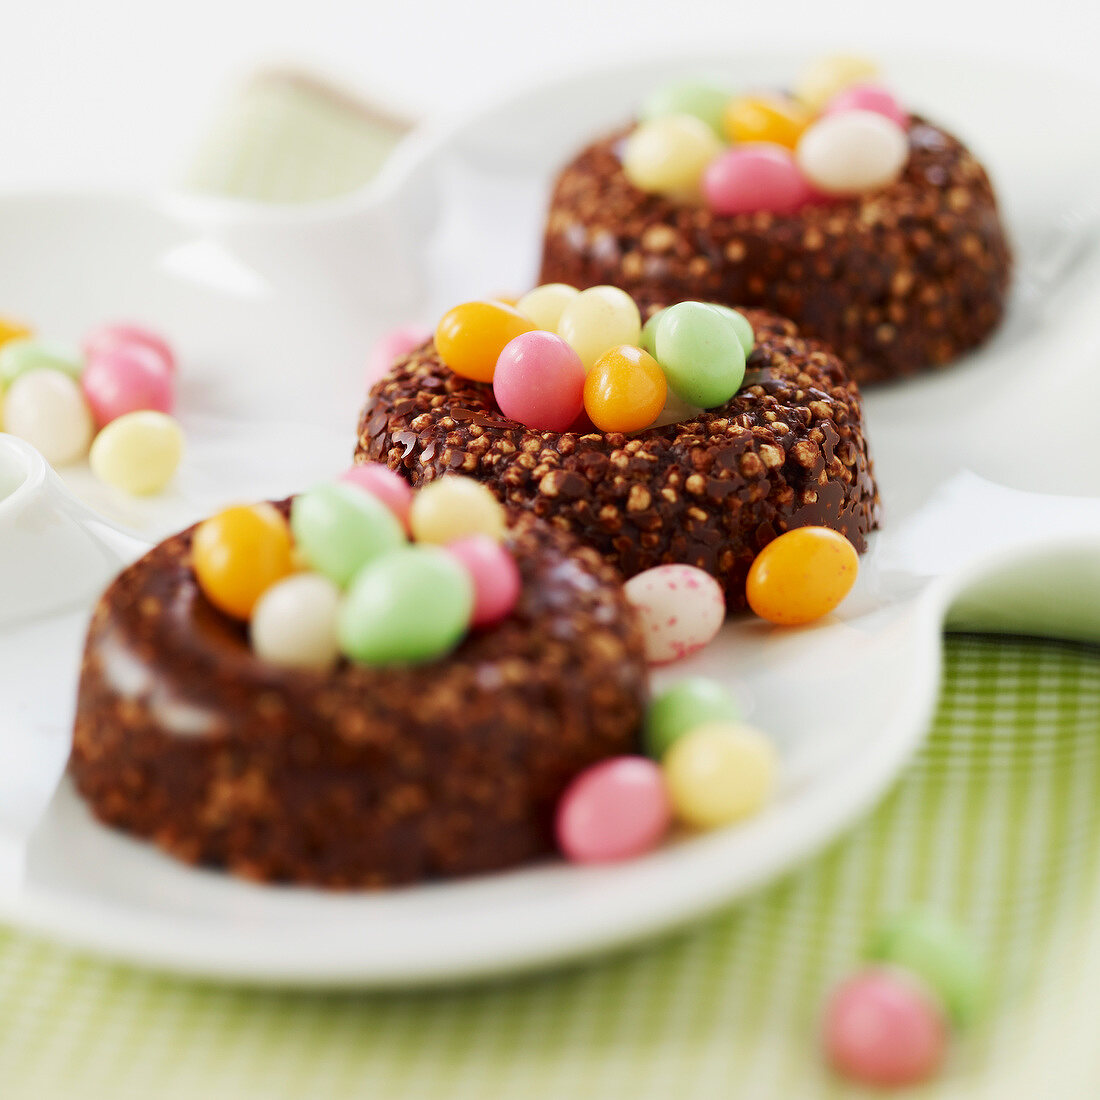 Crunchy chocolate nests filled with multicolored sugar Easter eggs